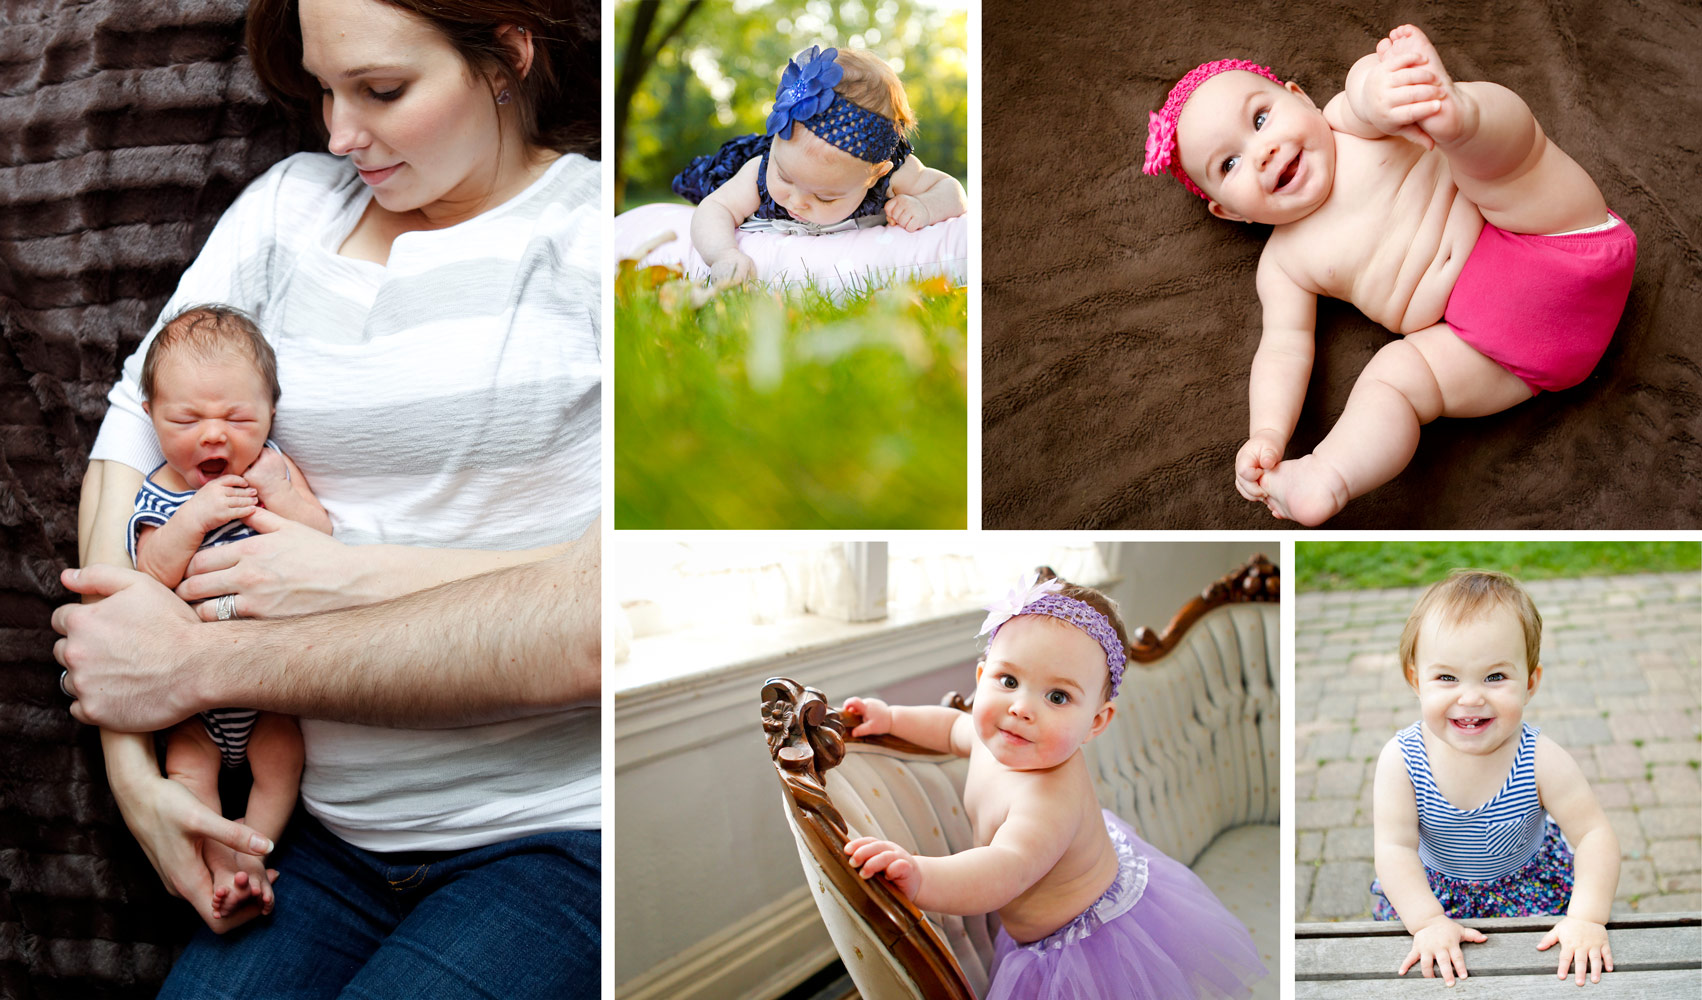 baby-portraits-lifestyle-candid-year-one-ruthie-hauge-photography-barrington-geneva-st-charles-fox-valley-batavia.jpg